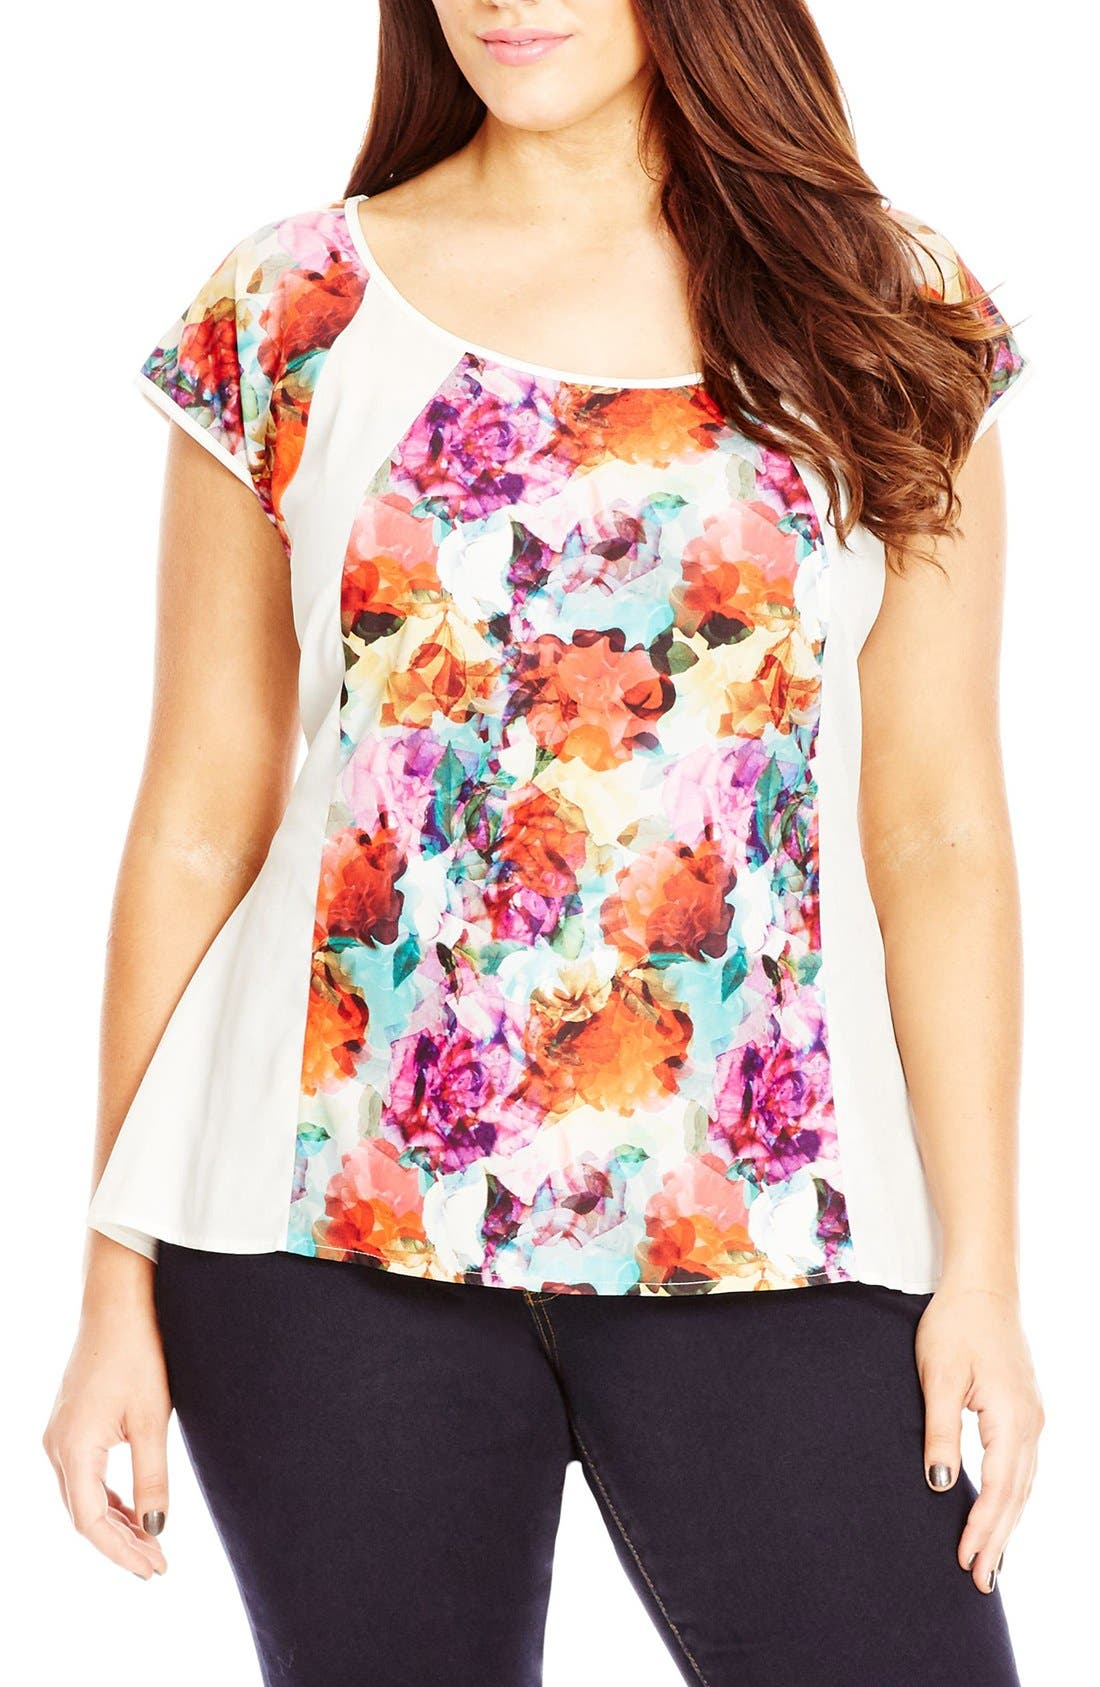 CITY CHIC 'Water Floral' Print Top